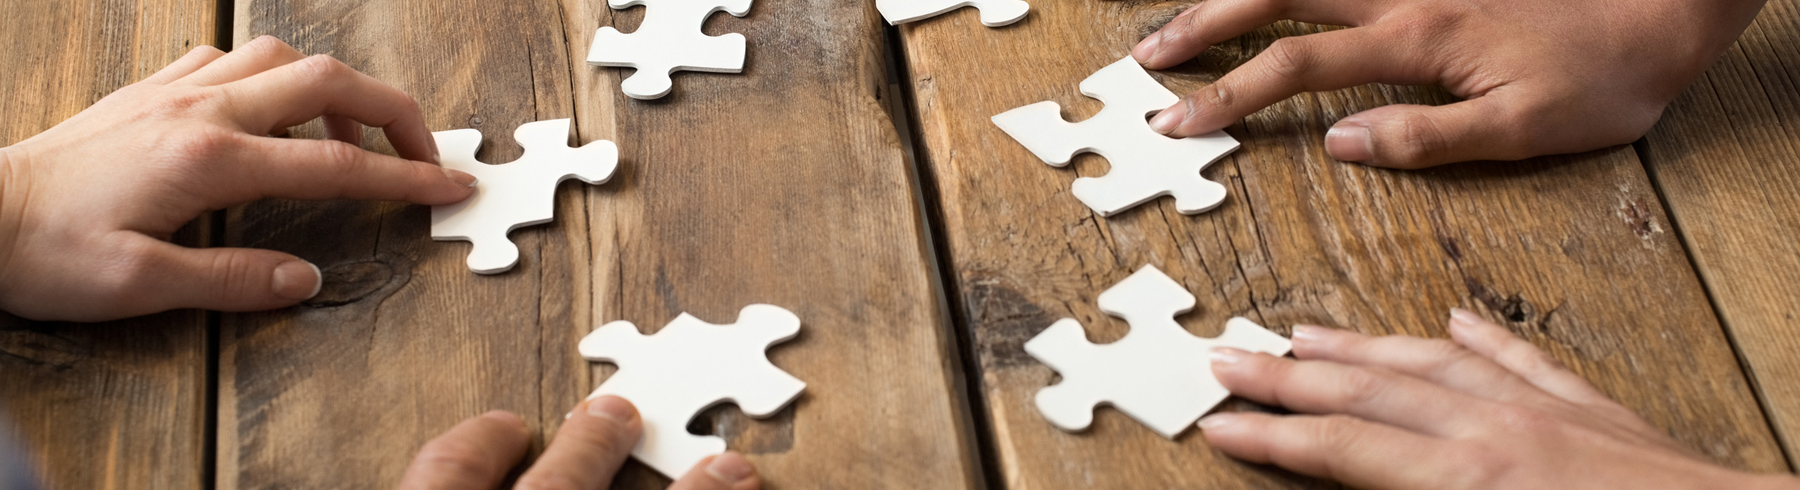 Outsell's Values- puzzle pieces